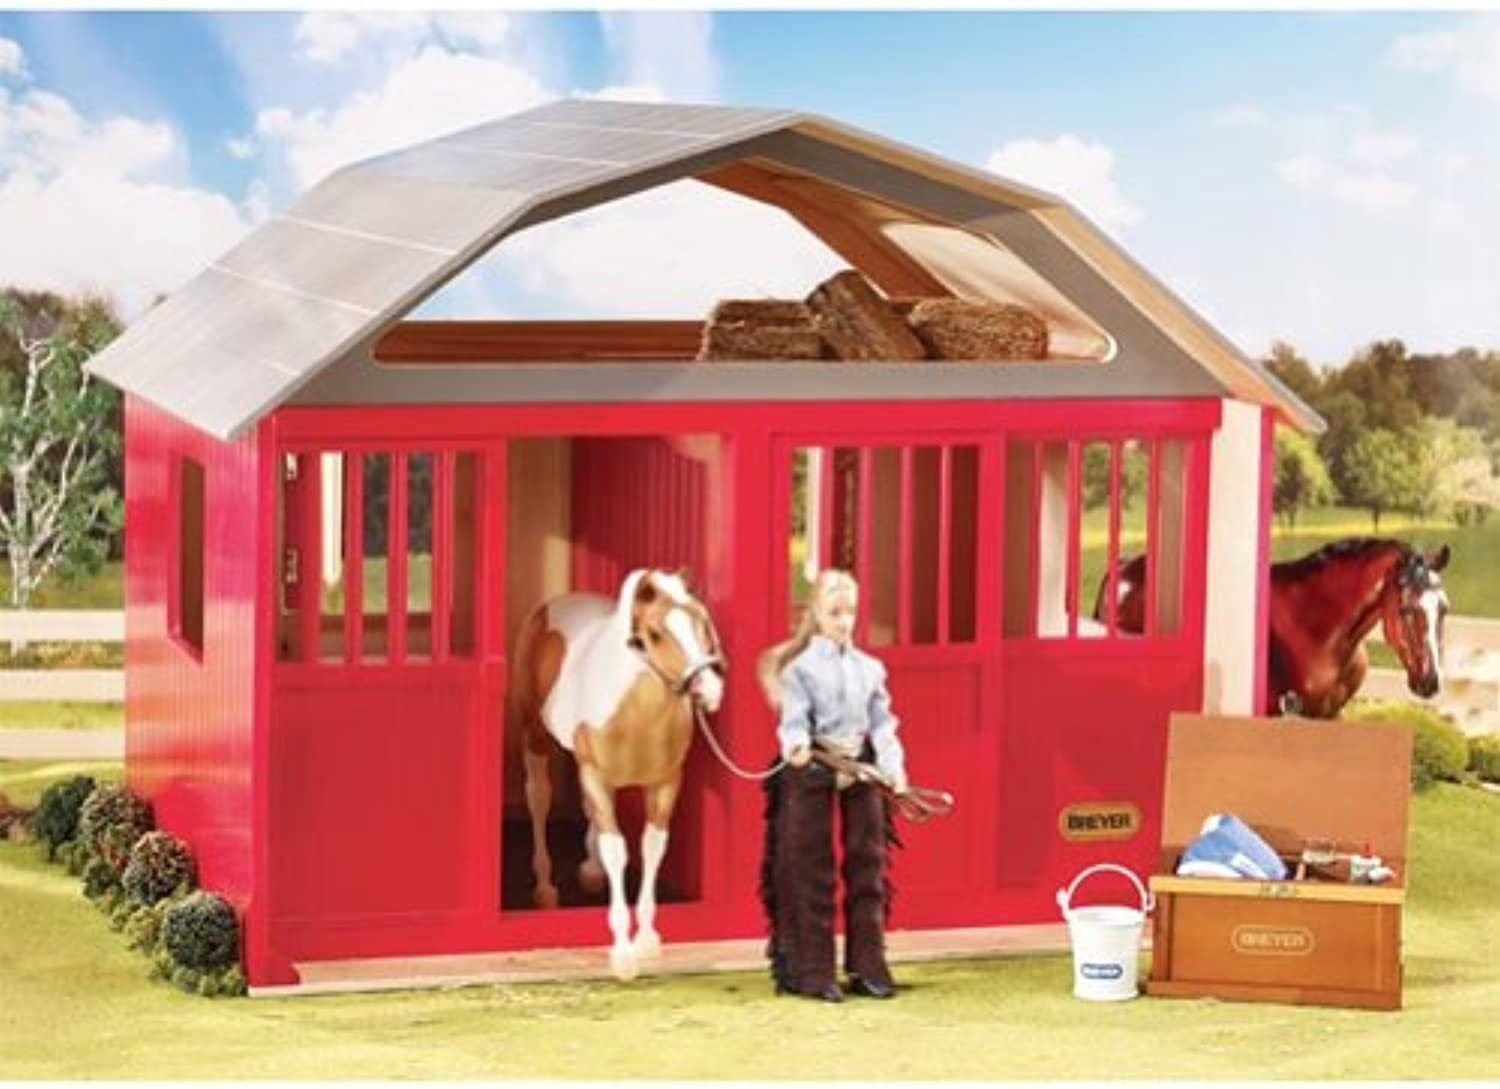 Breyer Traditional TwoStall Horse Barn Toy Model (1  9 Scale), Red